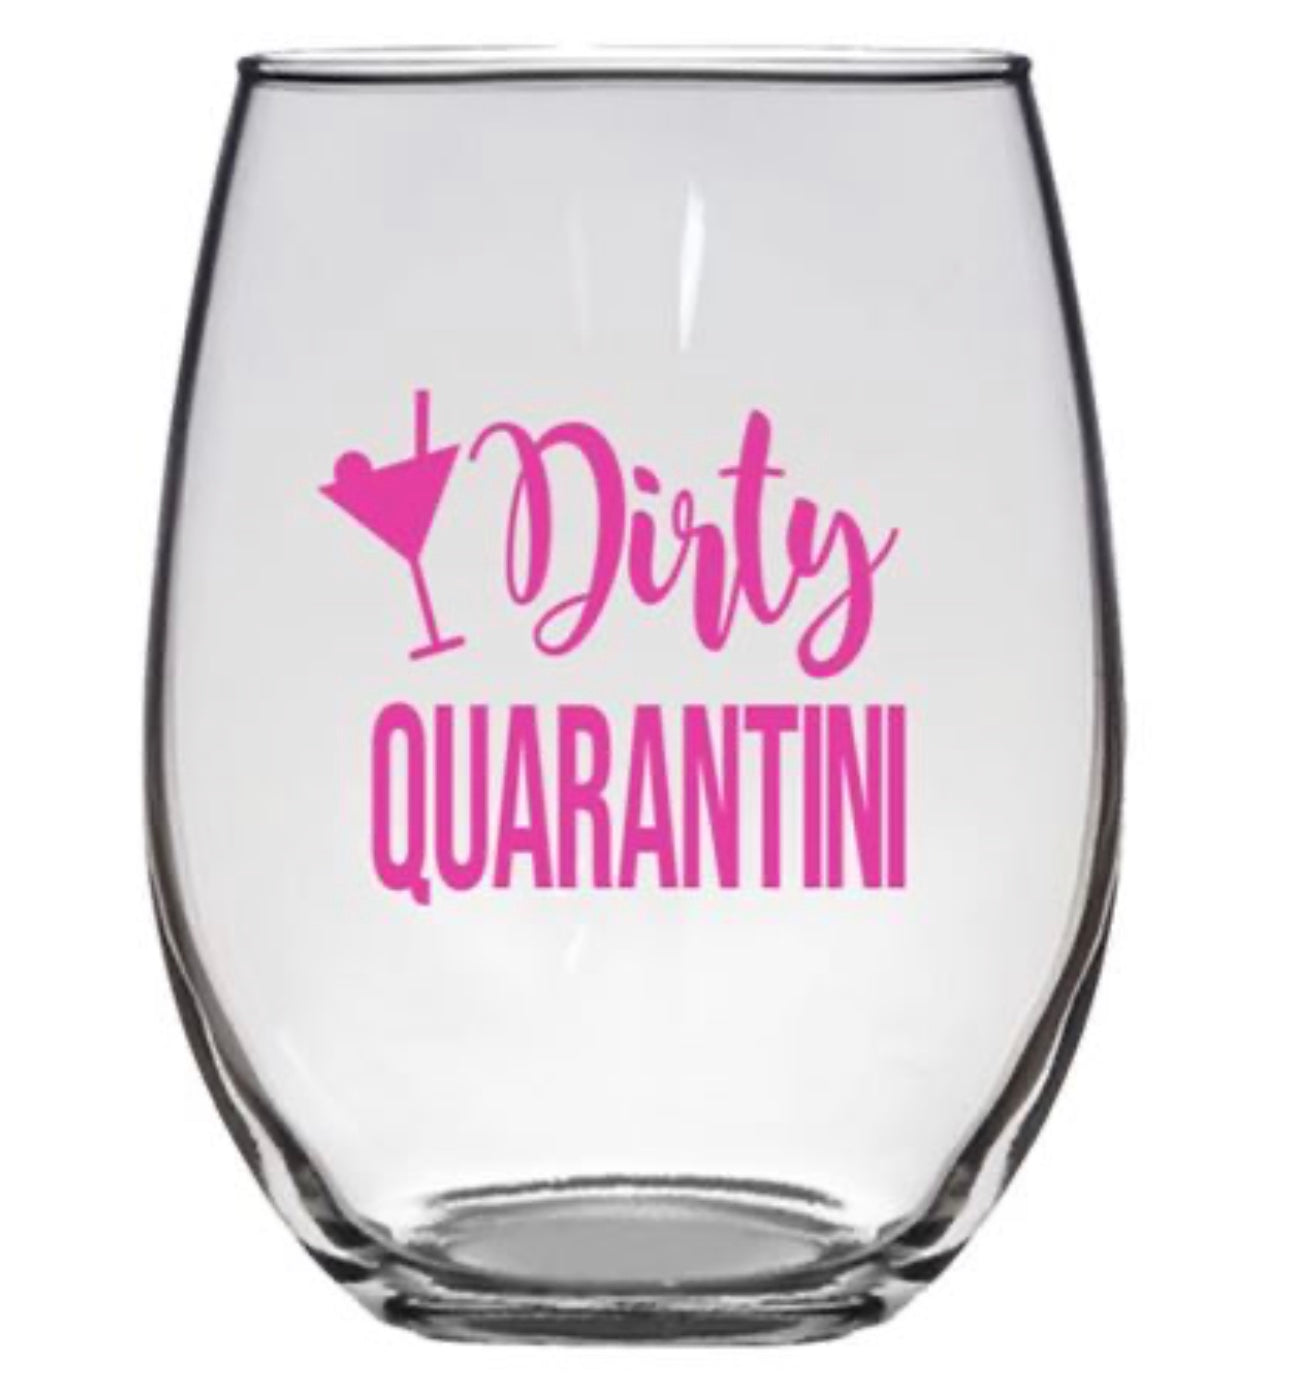 STEMLESS WINE GLASS - QUARANTINI